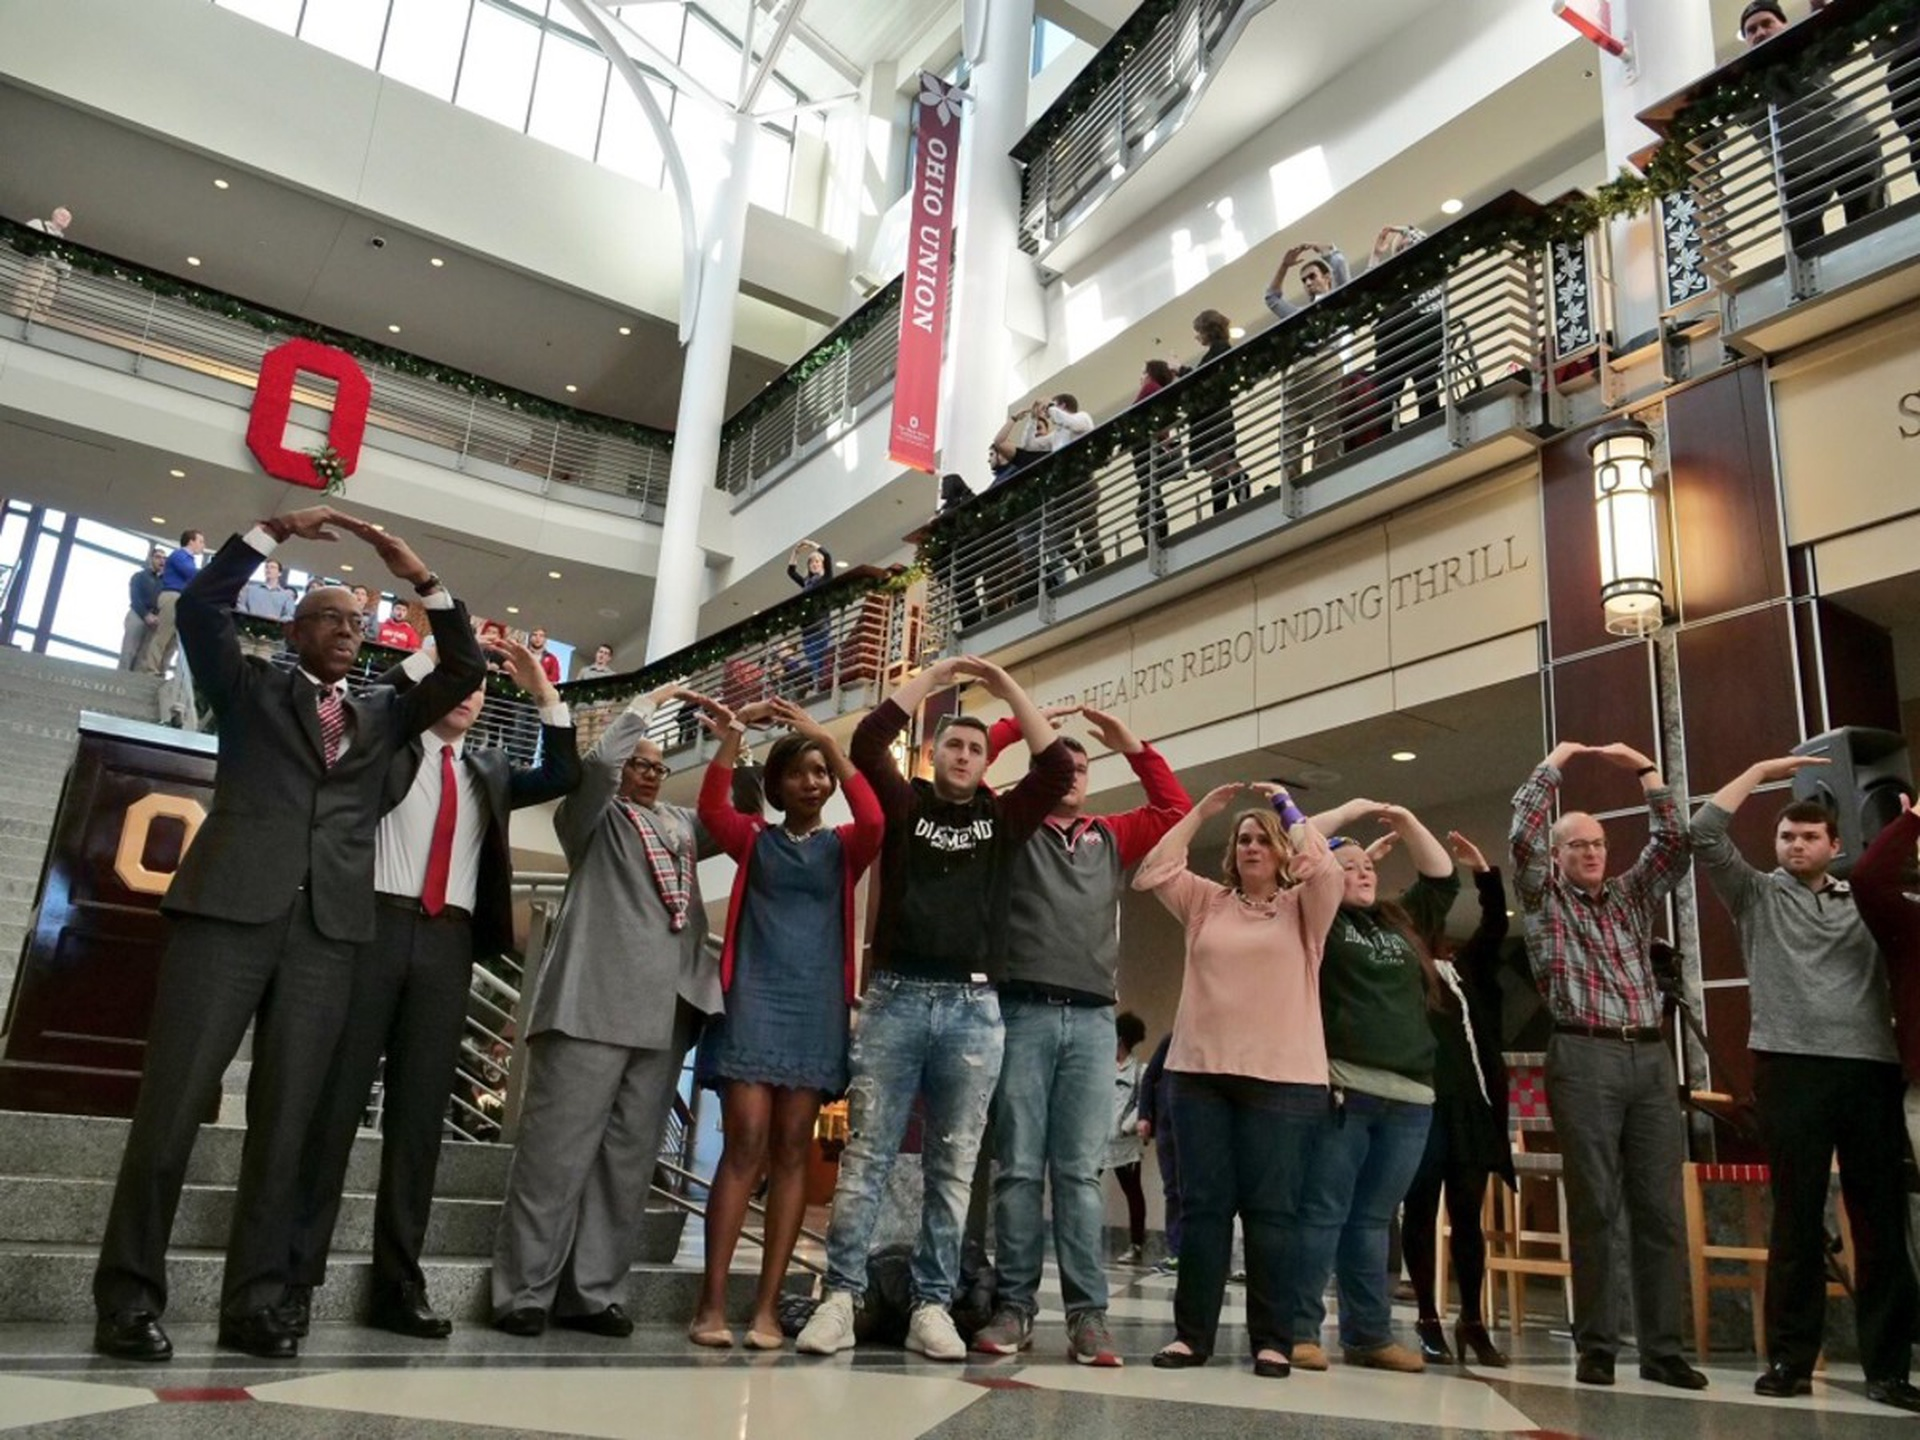 President Drake leads students, faculty and staff in Carmen Ohio. Photo by Gail Martineau